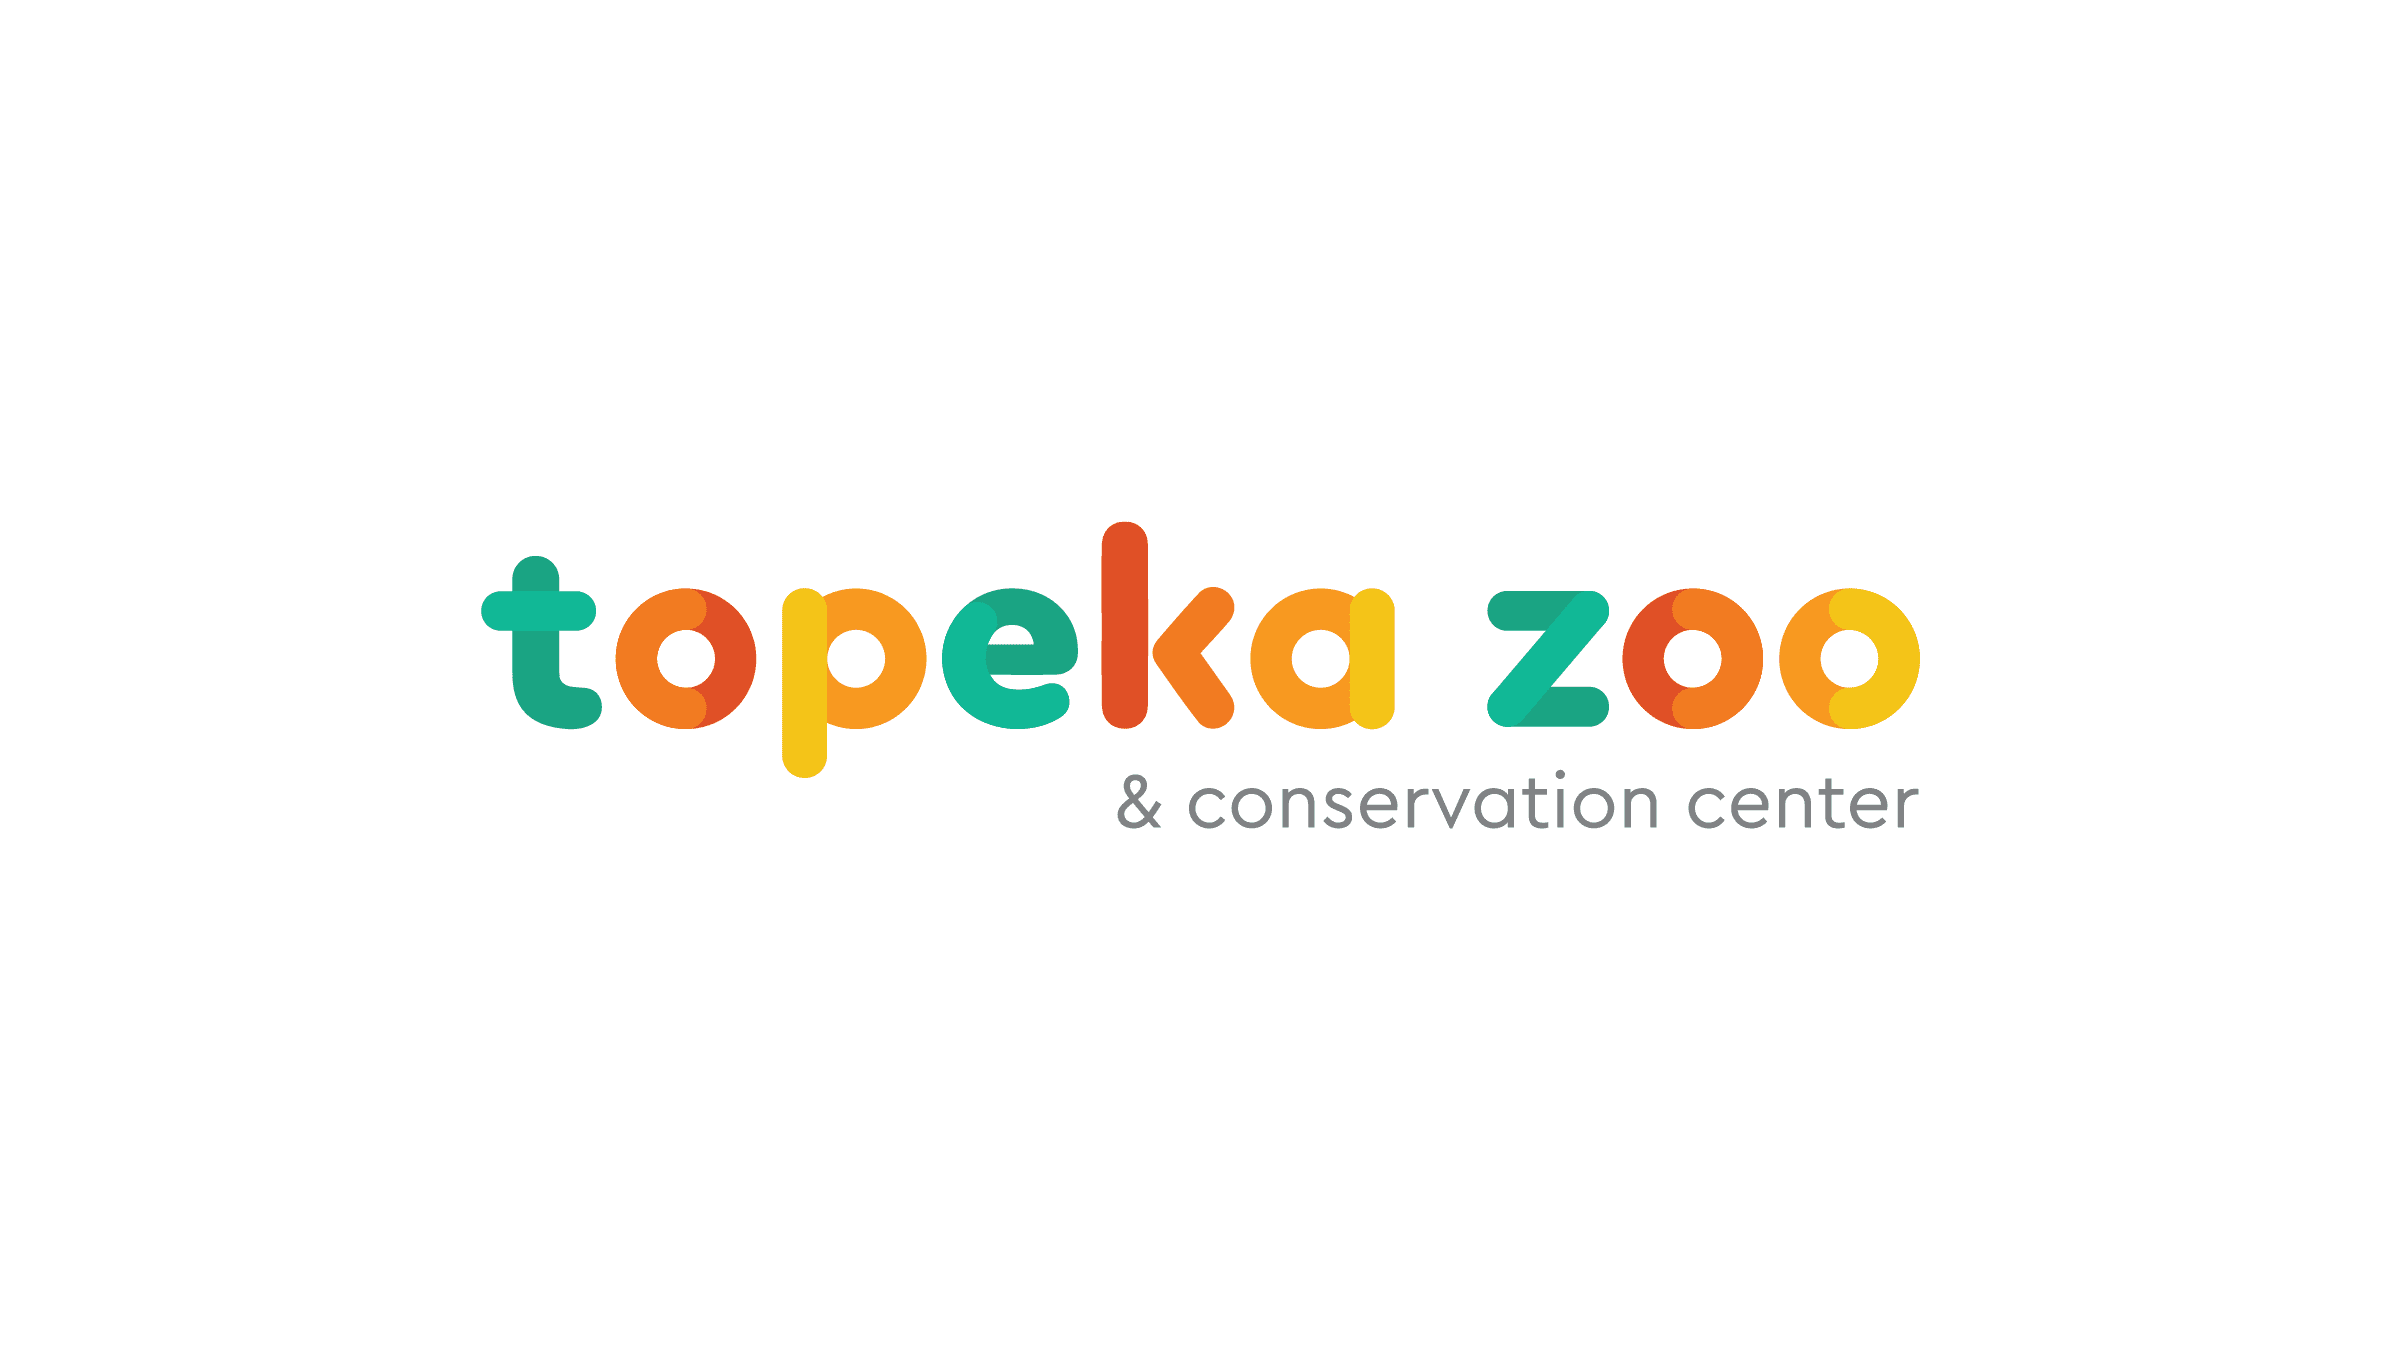 Topeka Zoo & Conservation Center